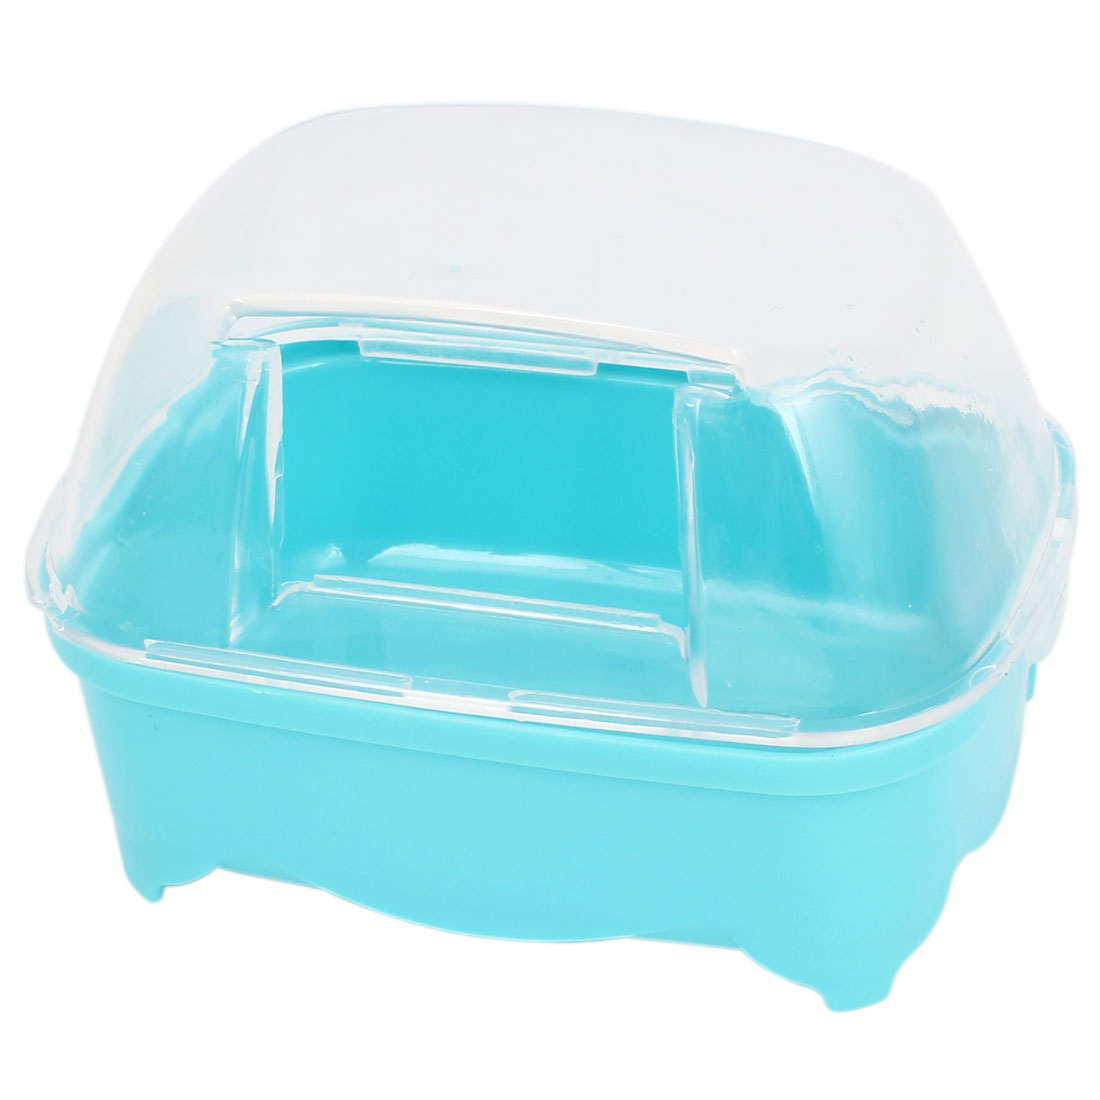 Clear Blue Hard Plastic Hamsters Gerbil Bathing House Sand Cage Pet Bathroom